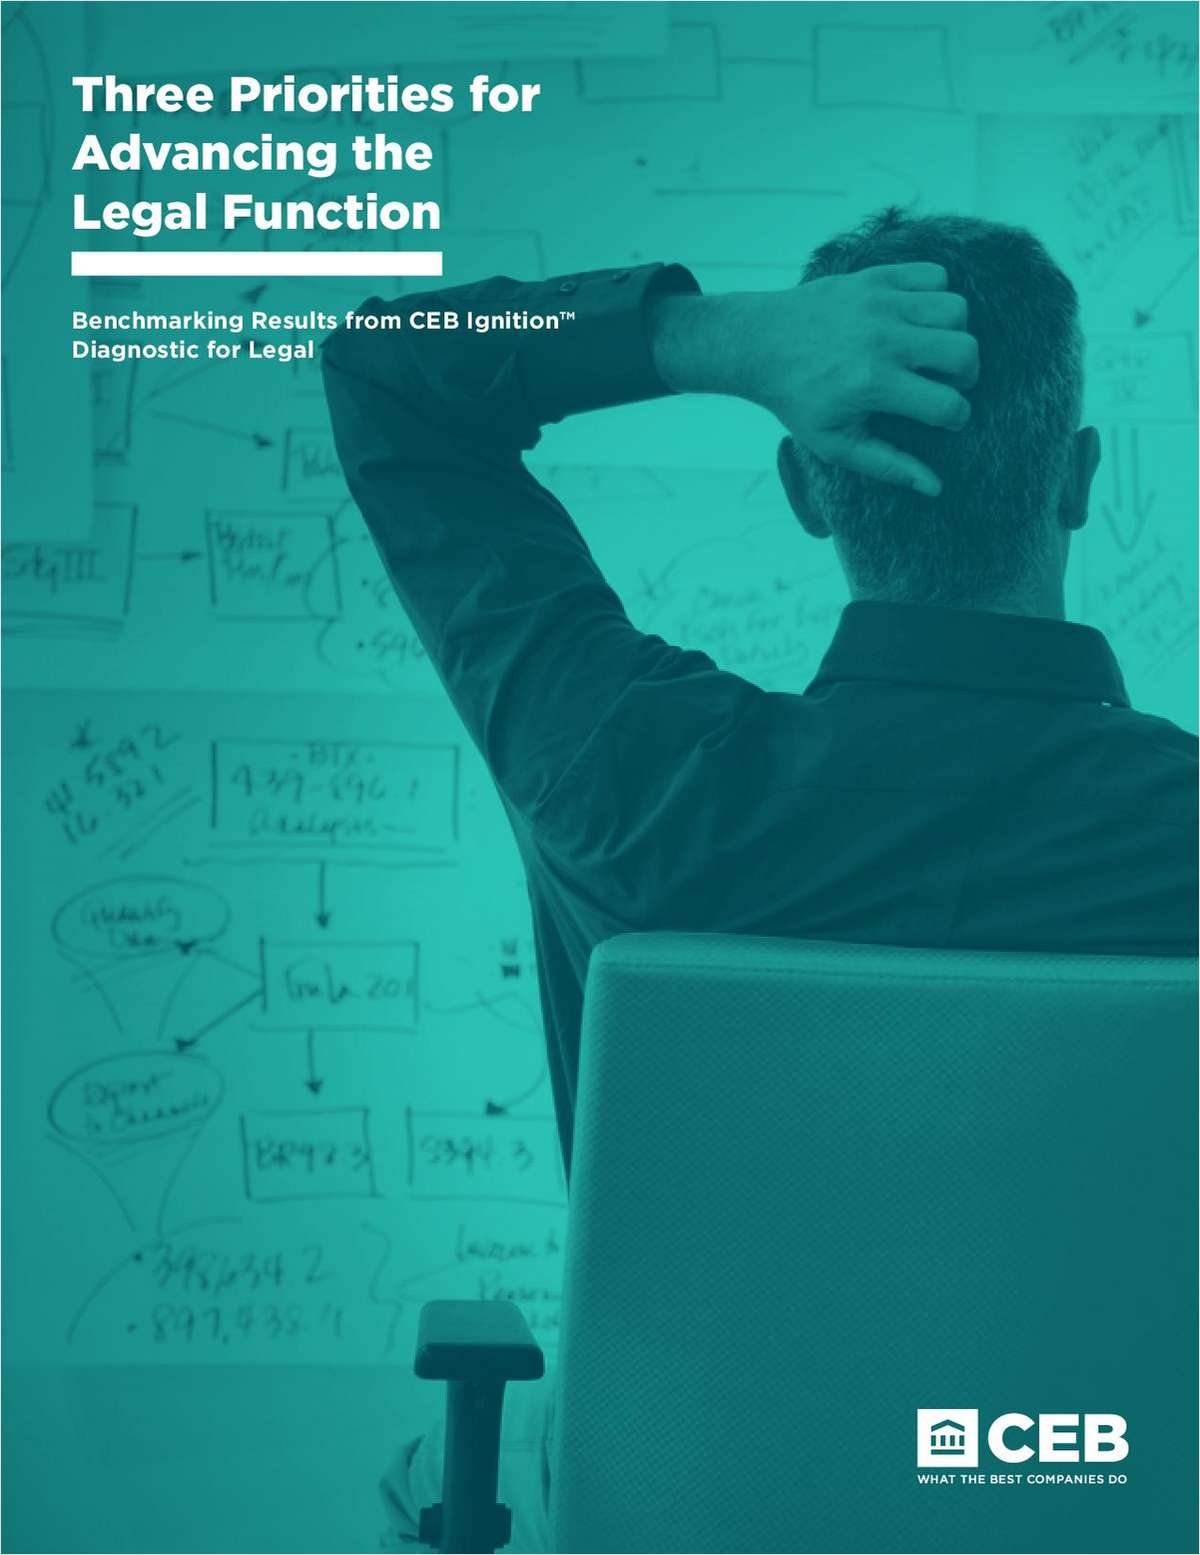 Three Key Priorities for Advancing the Legal Function